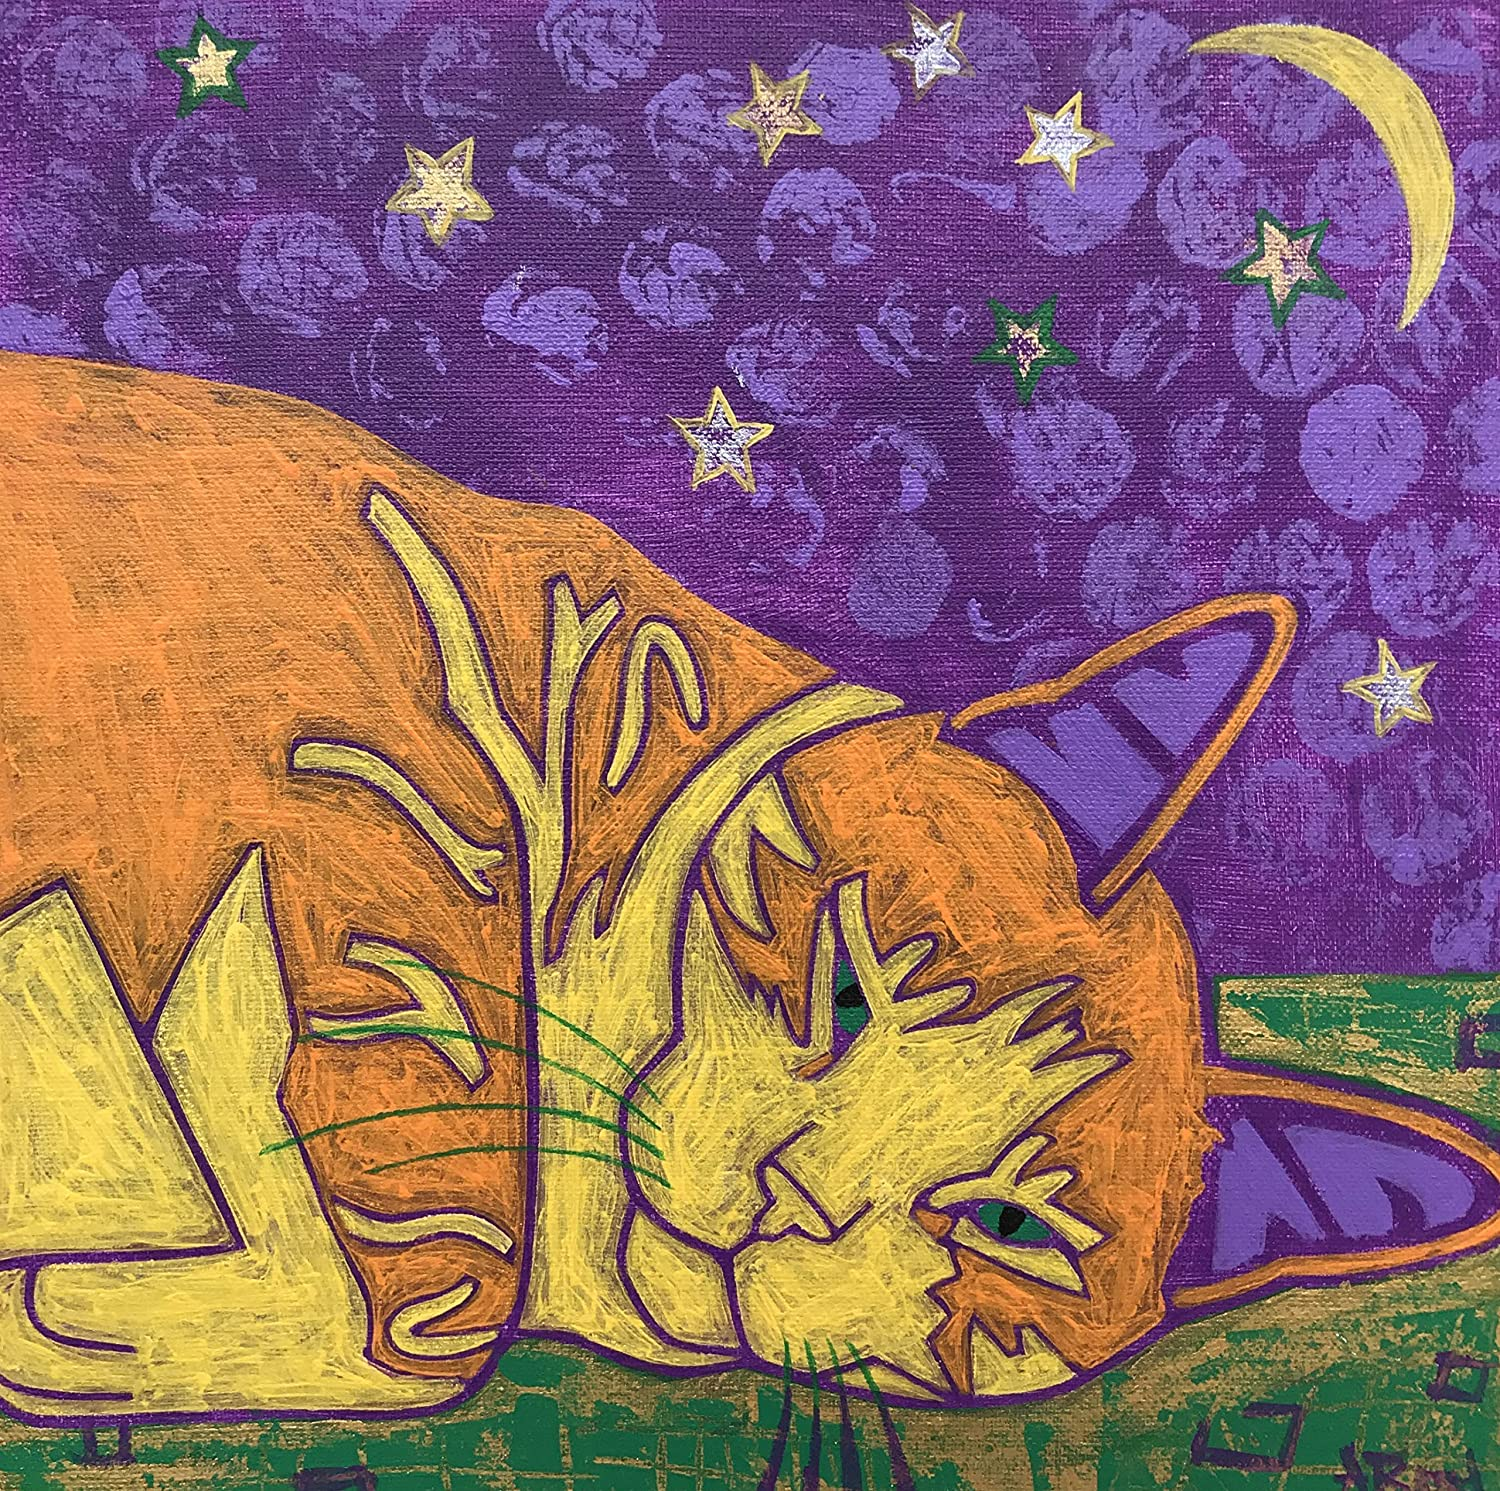 Napping Tabby Cat Tile Coaster, Cat Lover Home Decor by Angela Bond